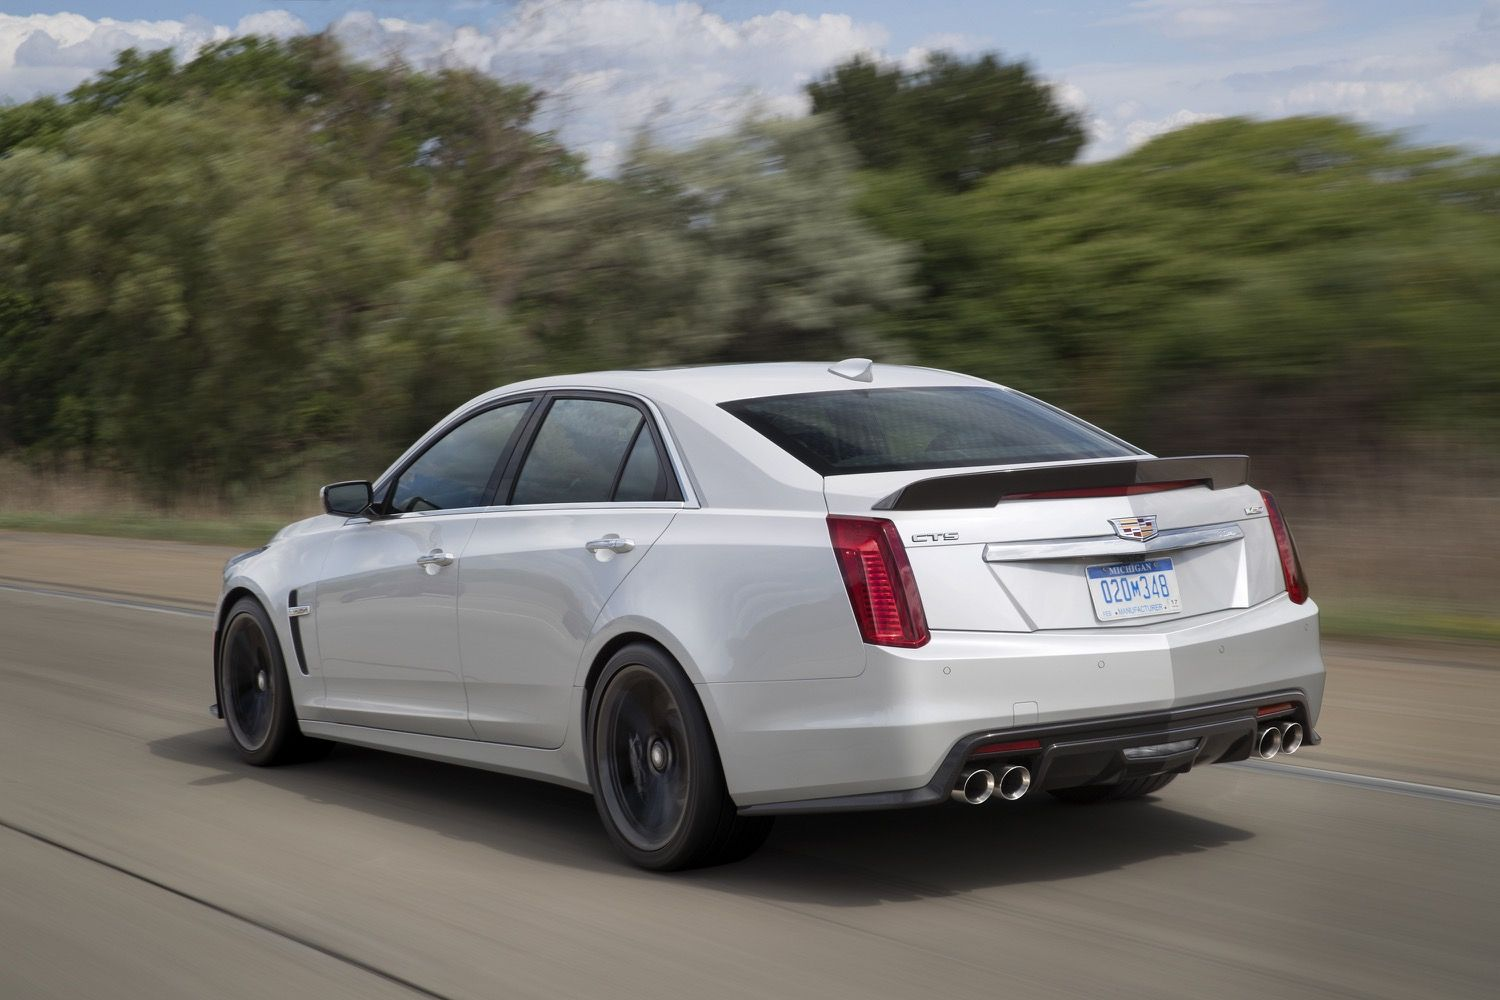 New for the 2017 cadillac cts v sedan the carbon black package introduces several unique features for the exterior and interior